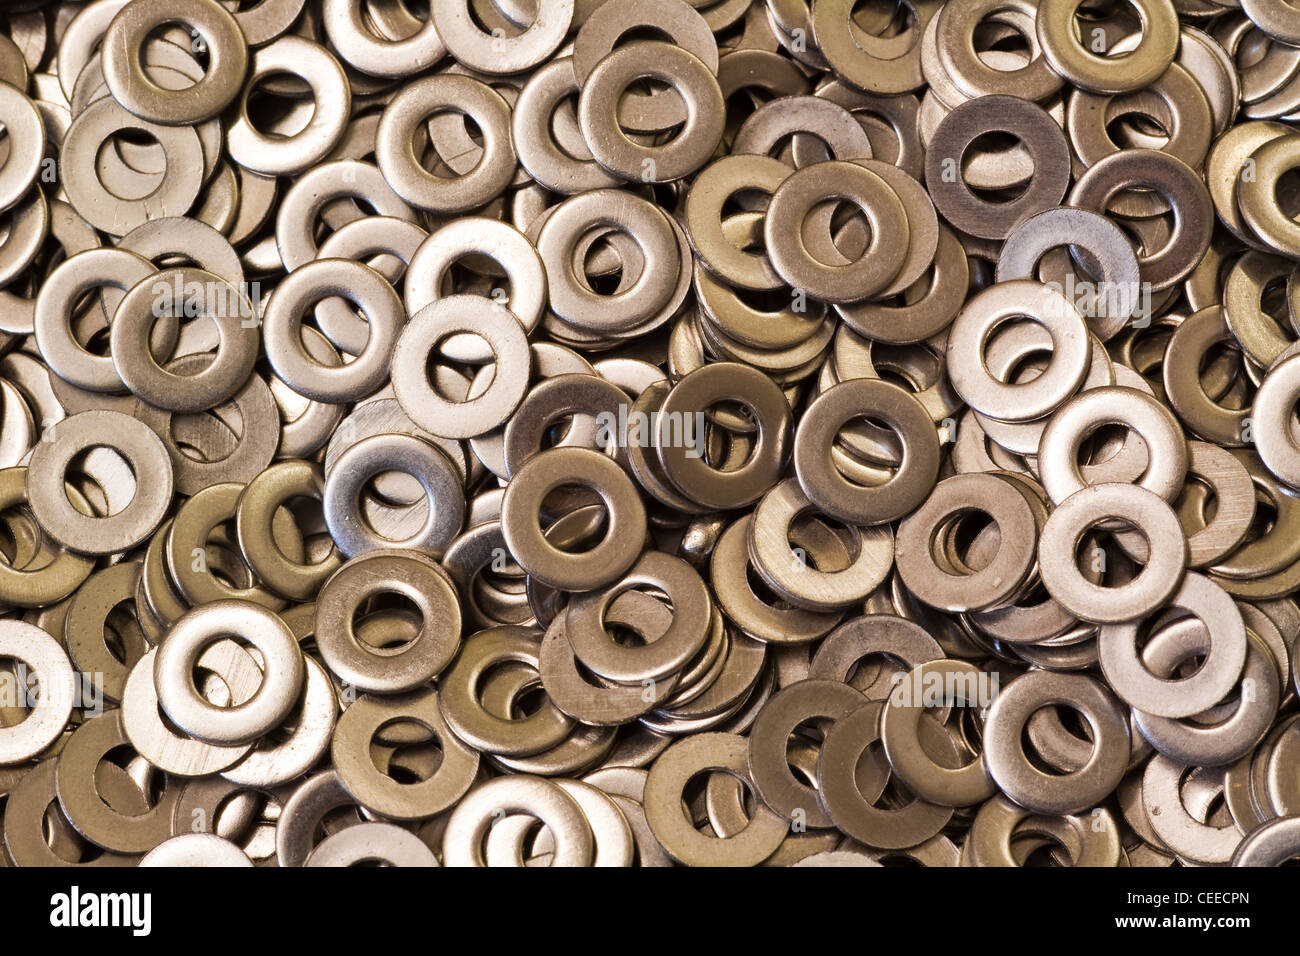 An abstract array of flat steel plain washers - Stock Image